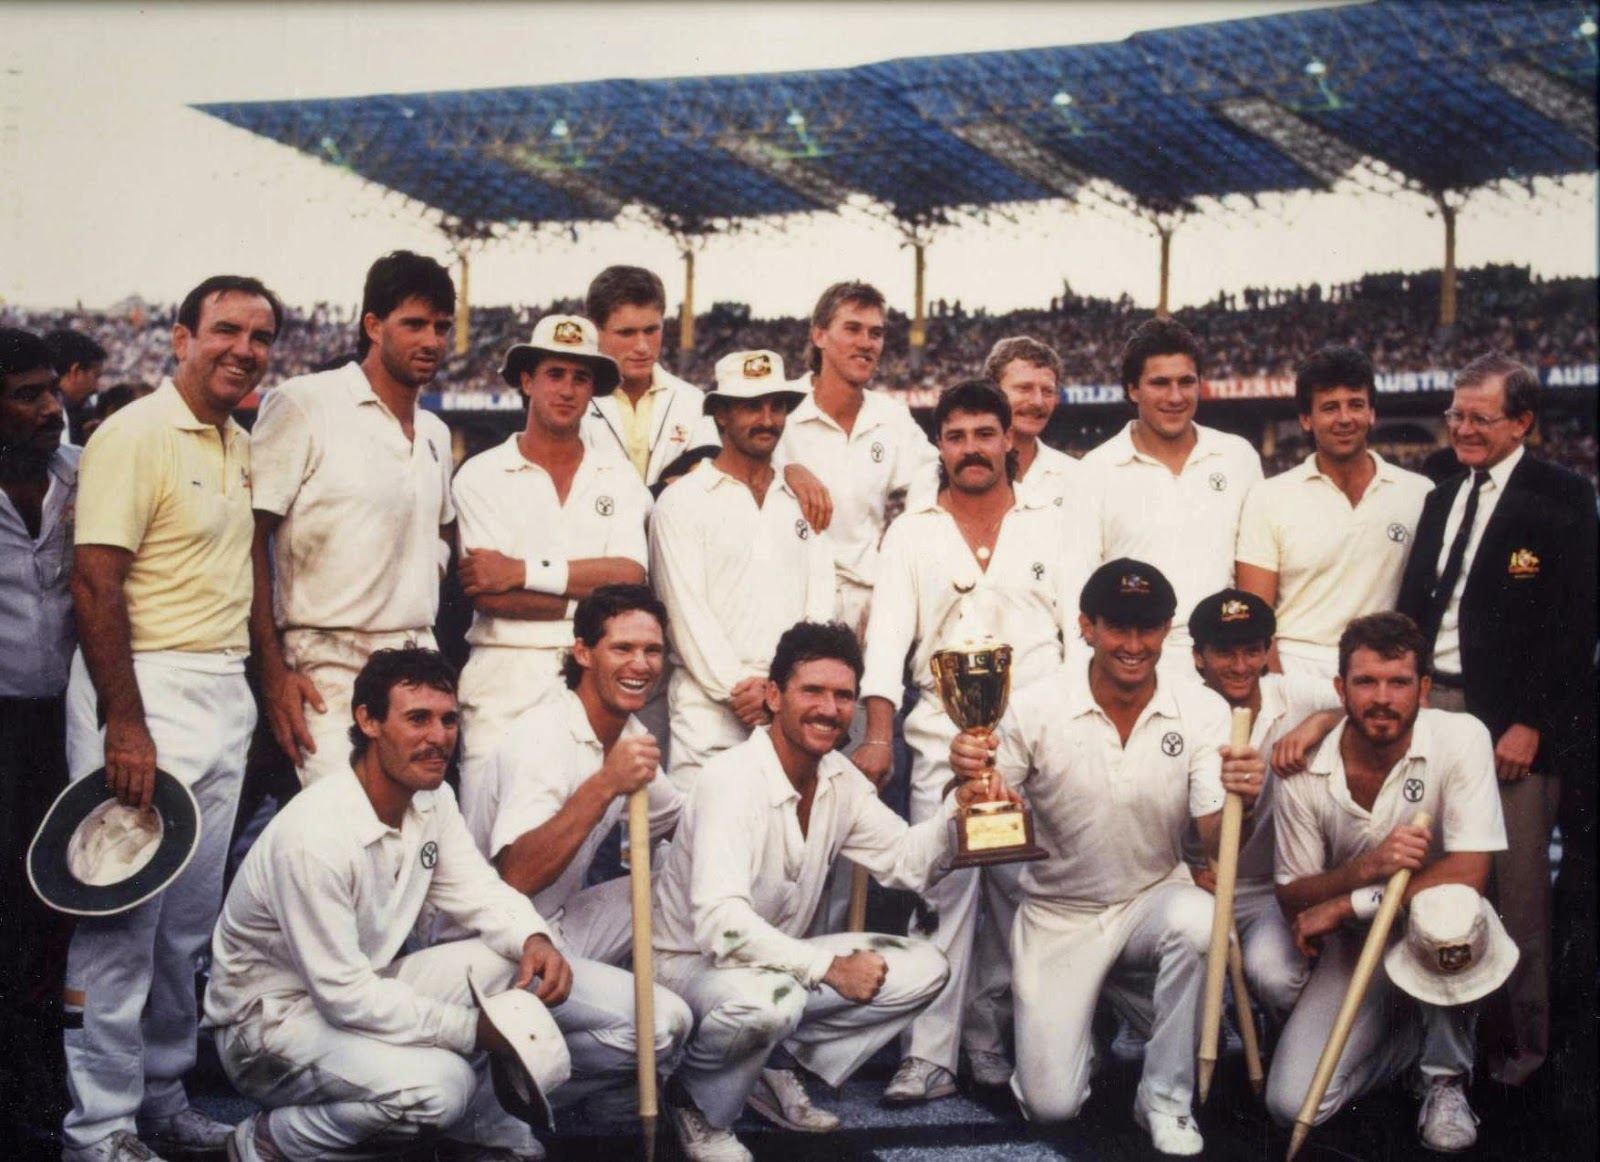 Australia 1987 World Cup Champion